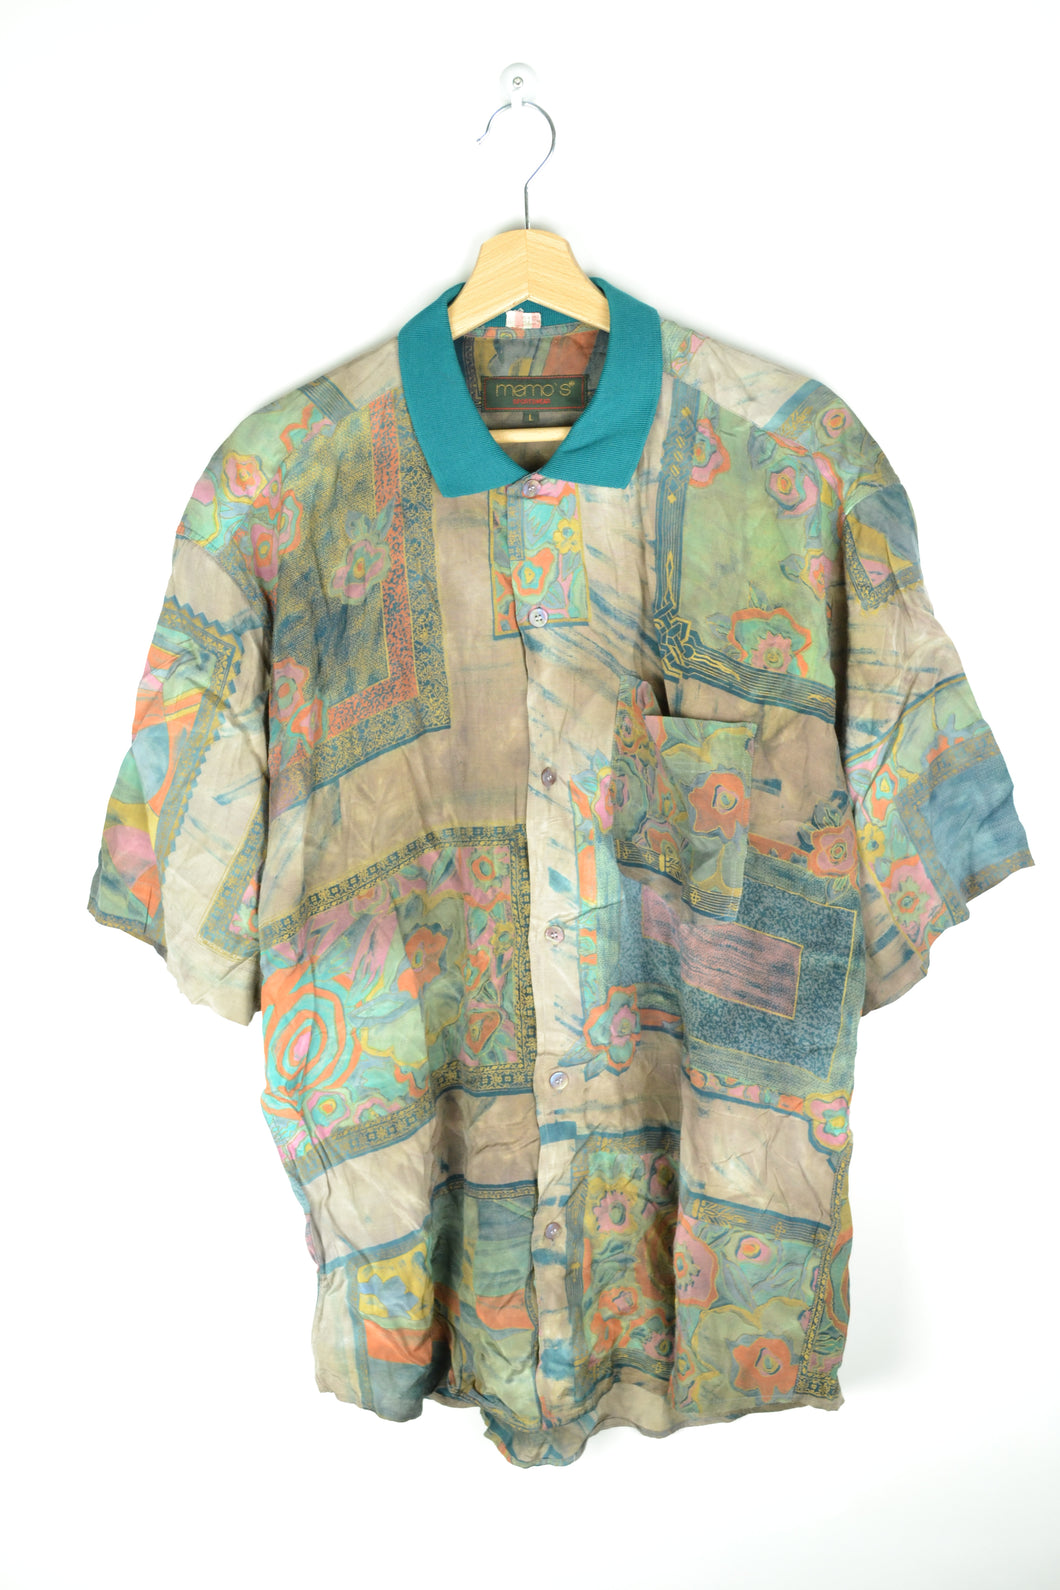 80s Printed Turquoise Men Shirt Large L